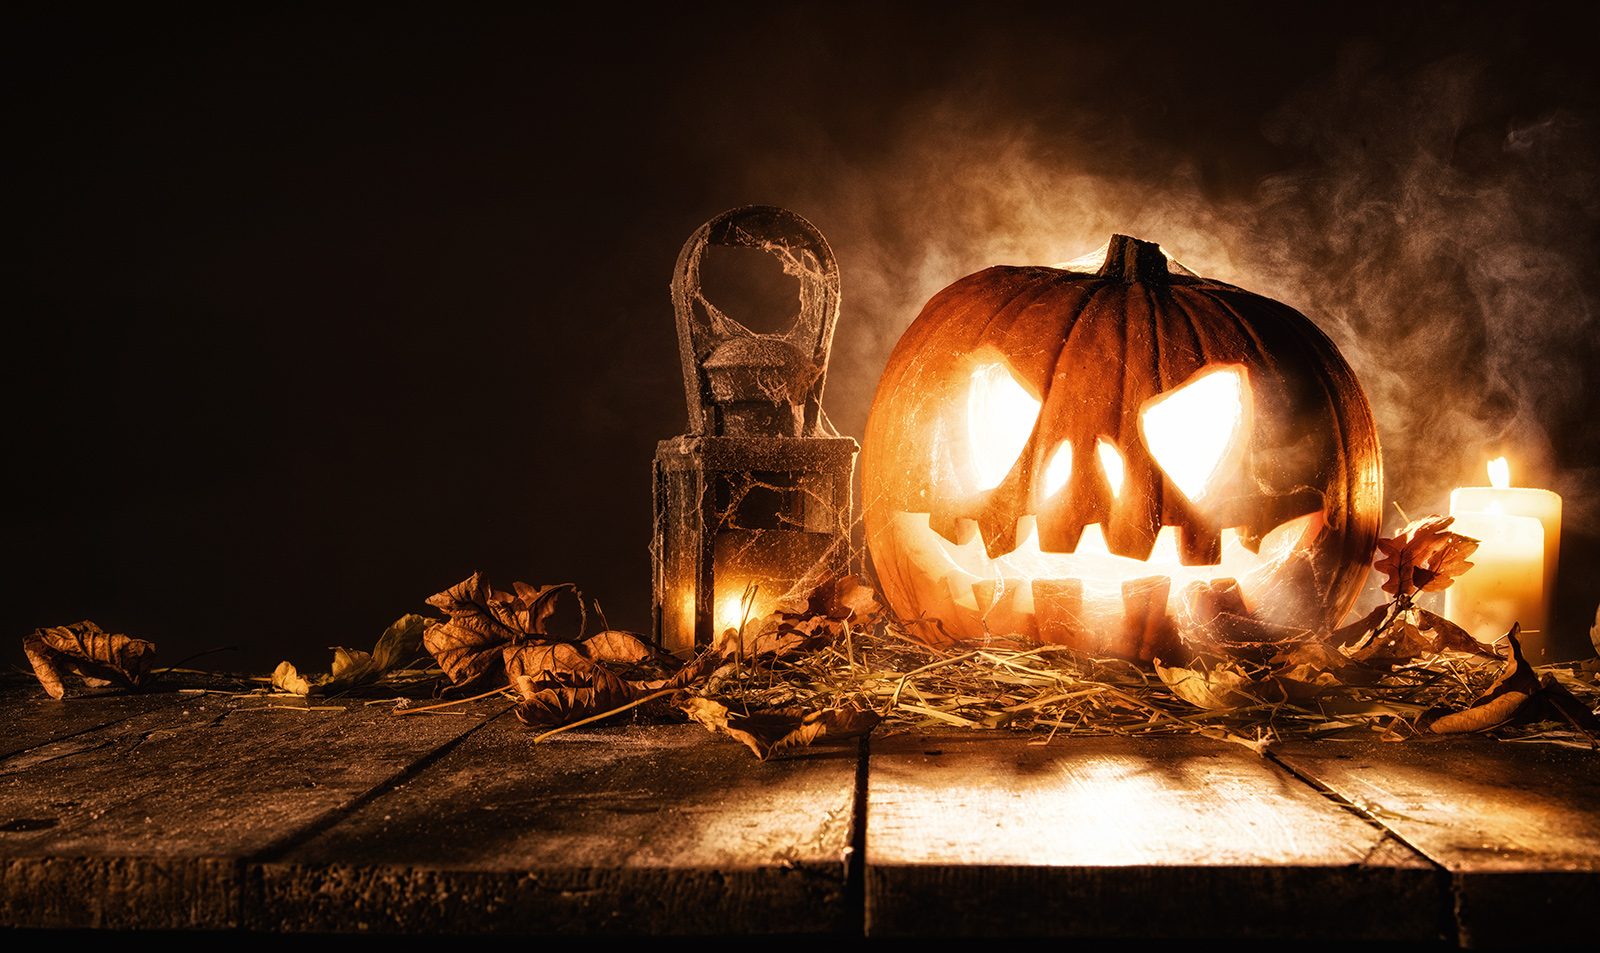 Halloween Discounts 2020 Halloween 2020 deals: All the best freebies and discounts from